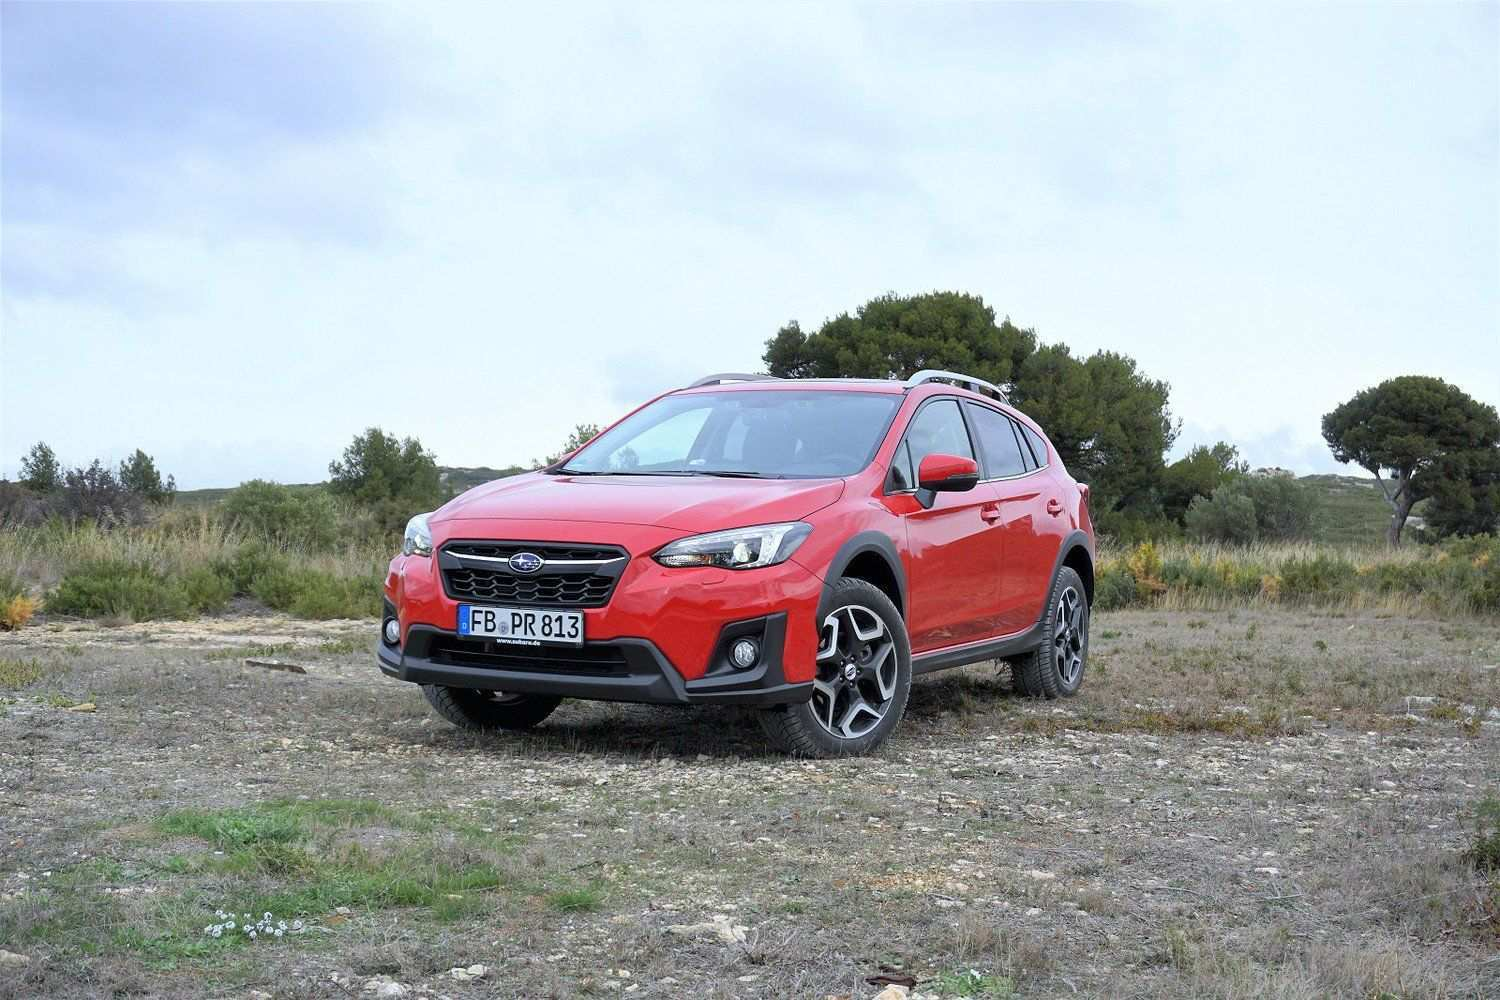 45 All New Subaru Xv Turbo 2020 Specs and Review by Subaru Xv Turbo 2020